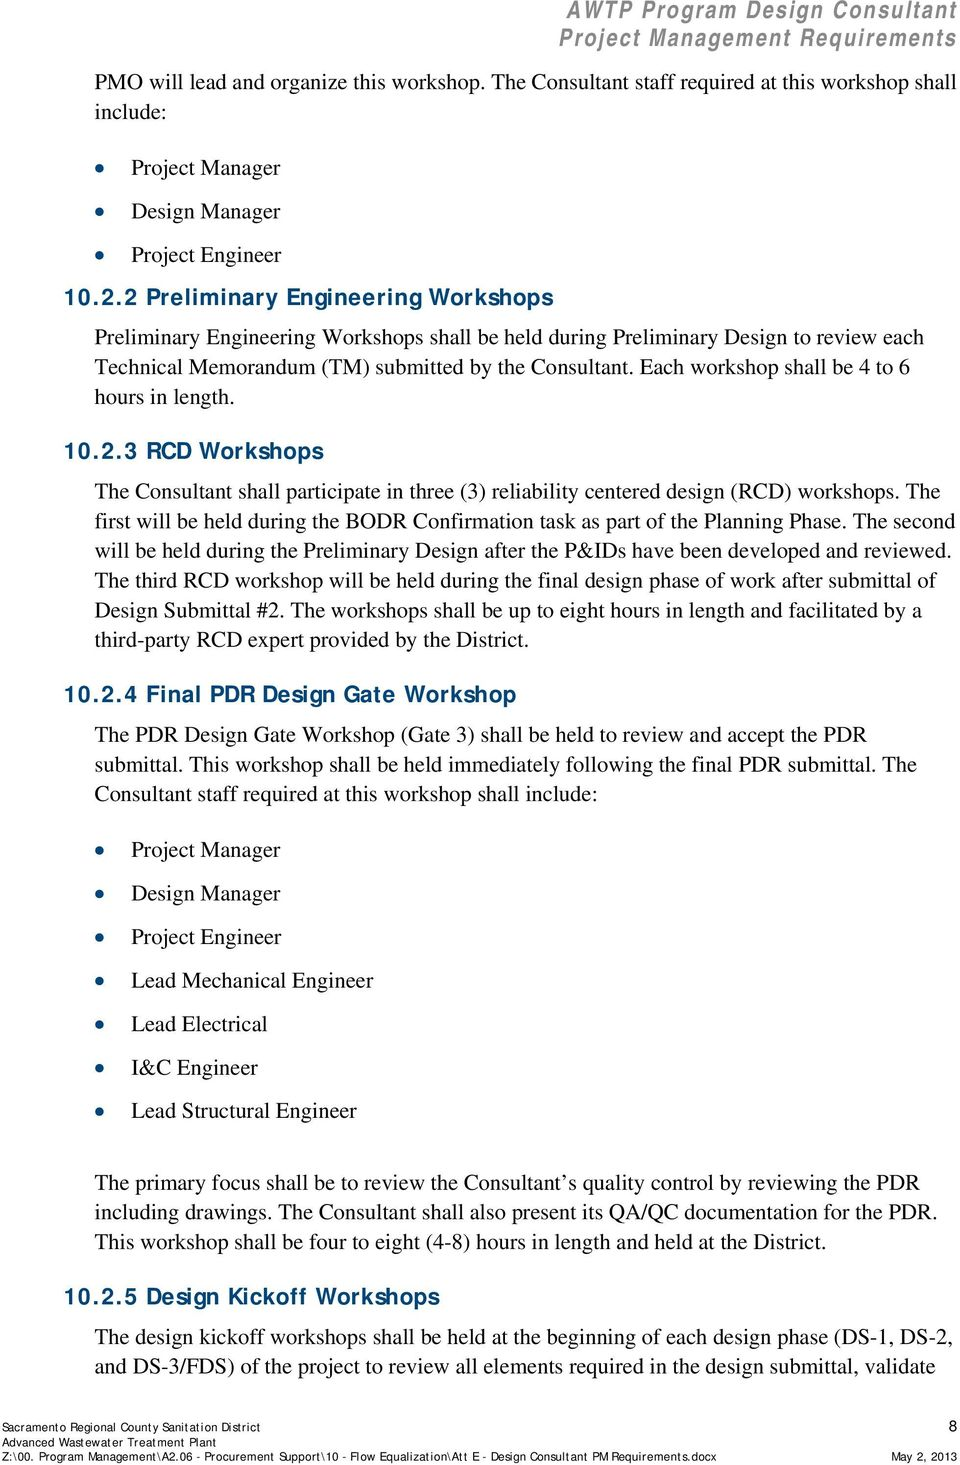 Each workshop shall be 4 to 6 hours in length. 10.2.3 RCD Workshops The Consultant shall participate in three (3) reliability centered design (RCD) workshops.